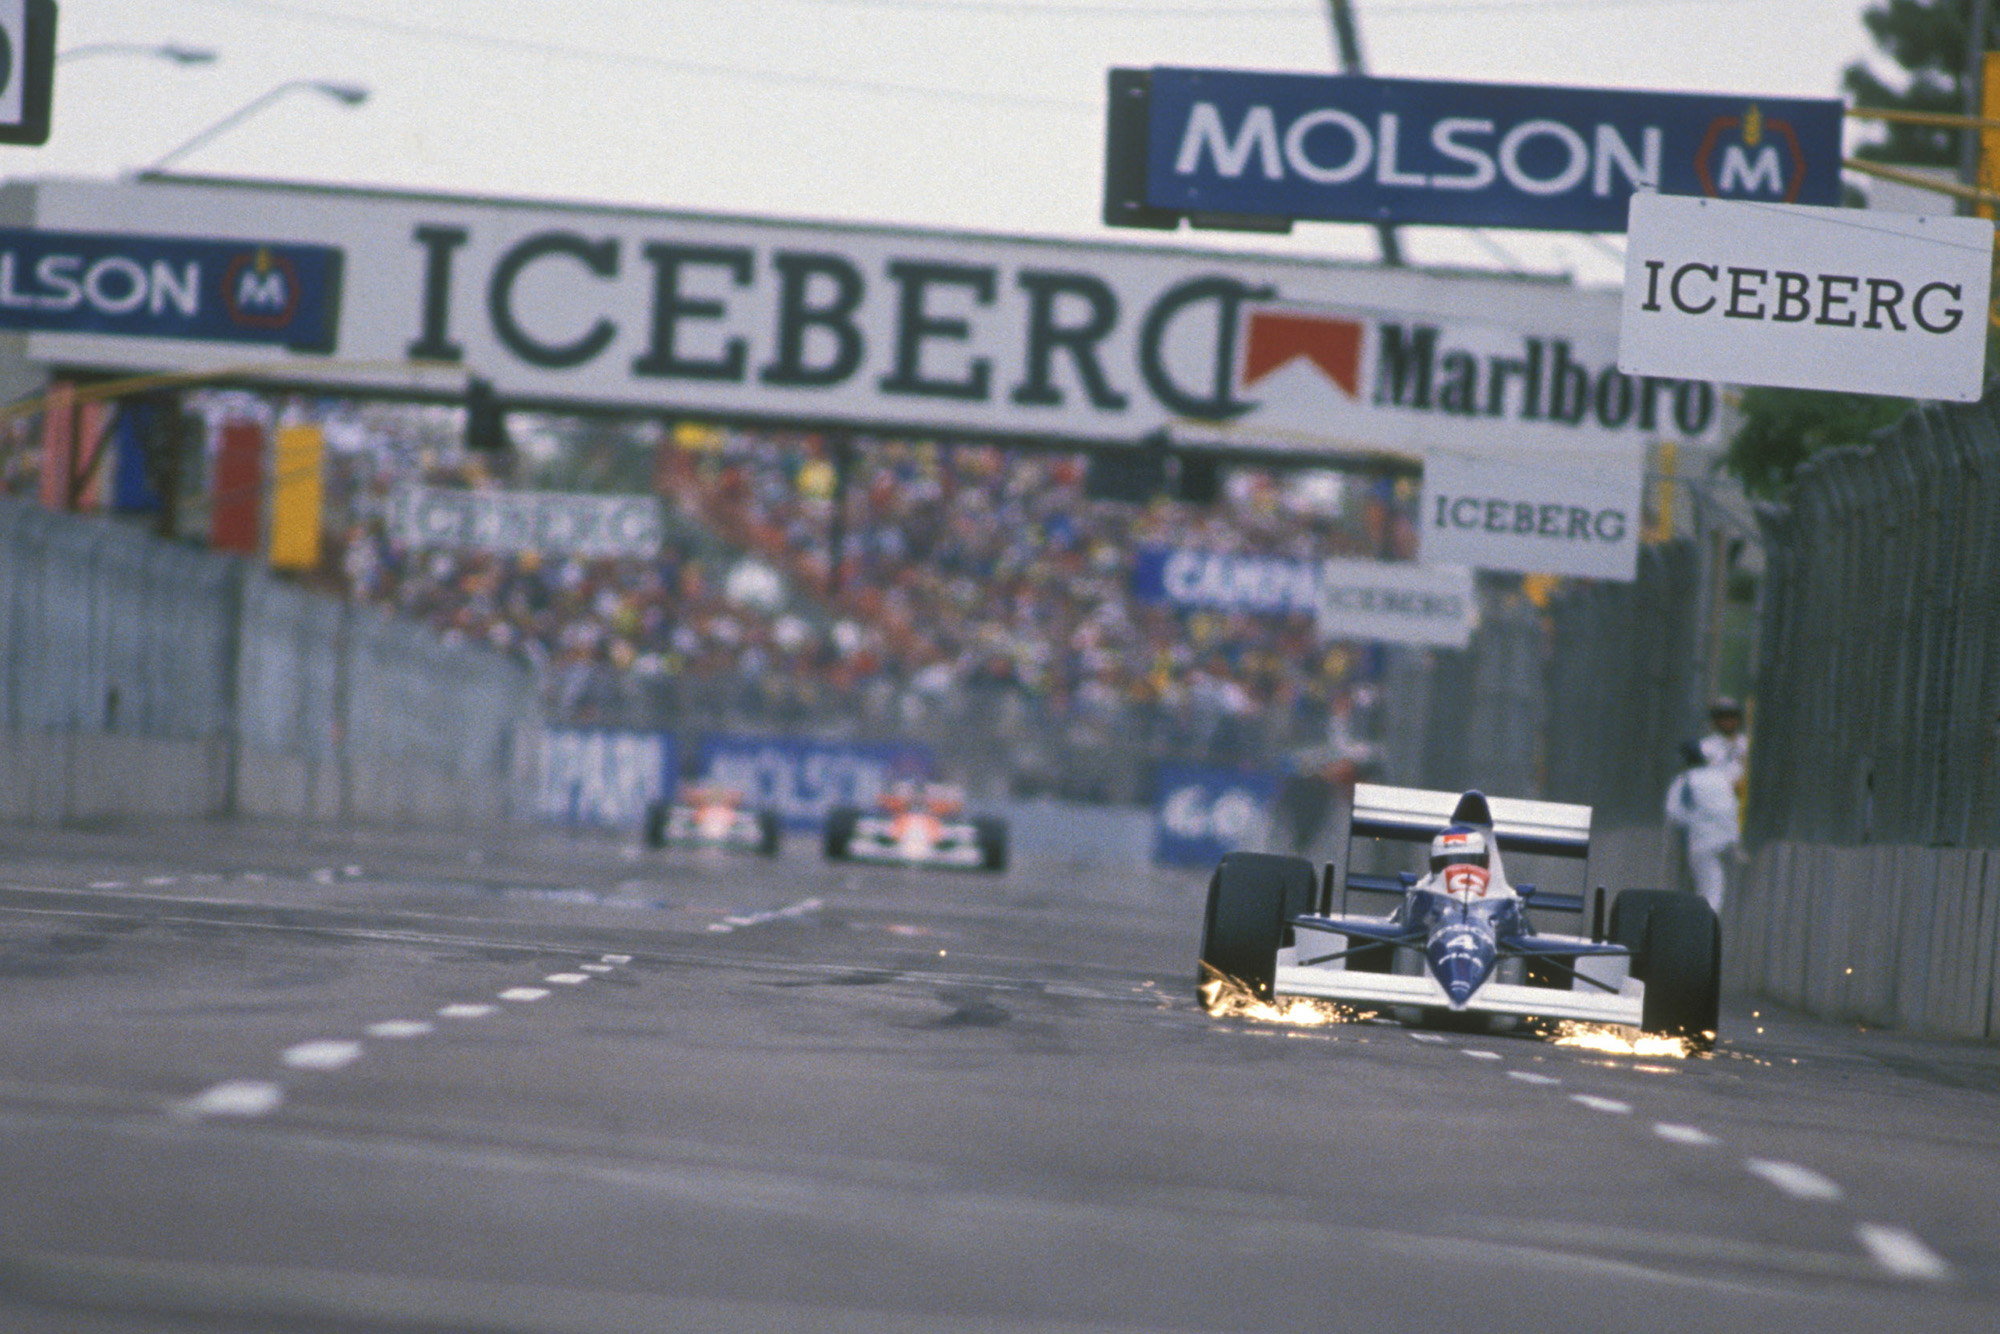 Jean Alesi's Tyrrell leads with a large gap to the chasing McLarens at the 1990 US Grand Prix